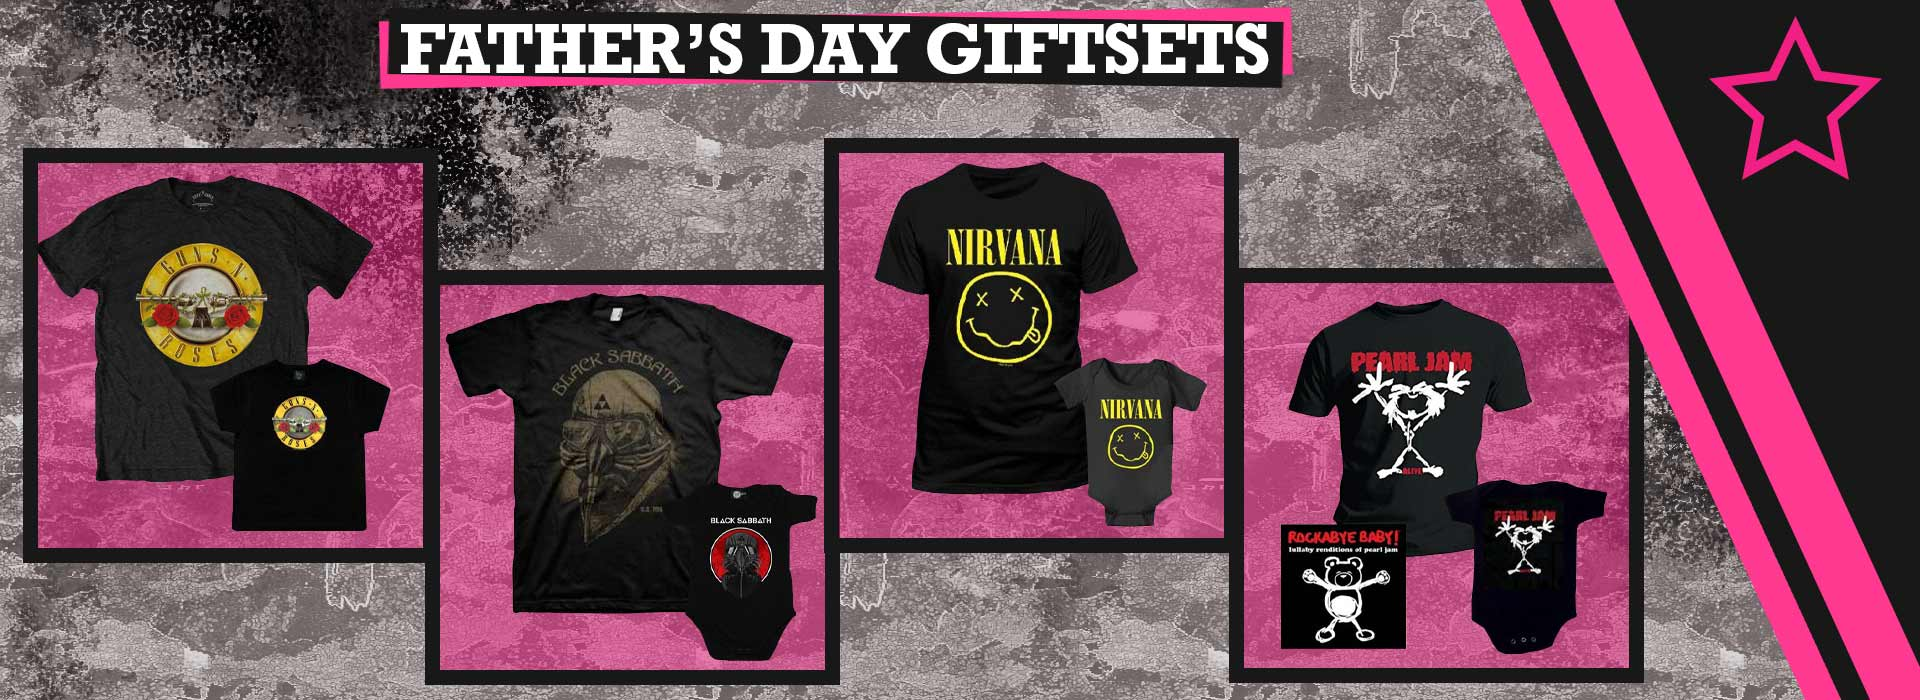 Father's Day Giftsets!